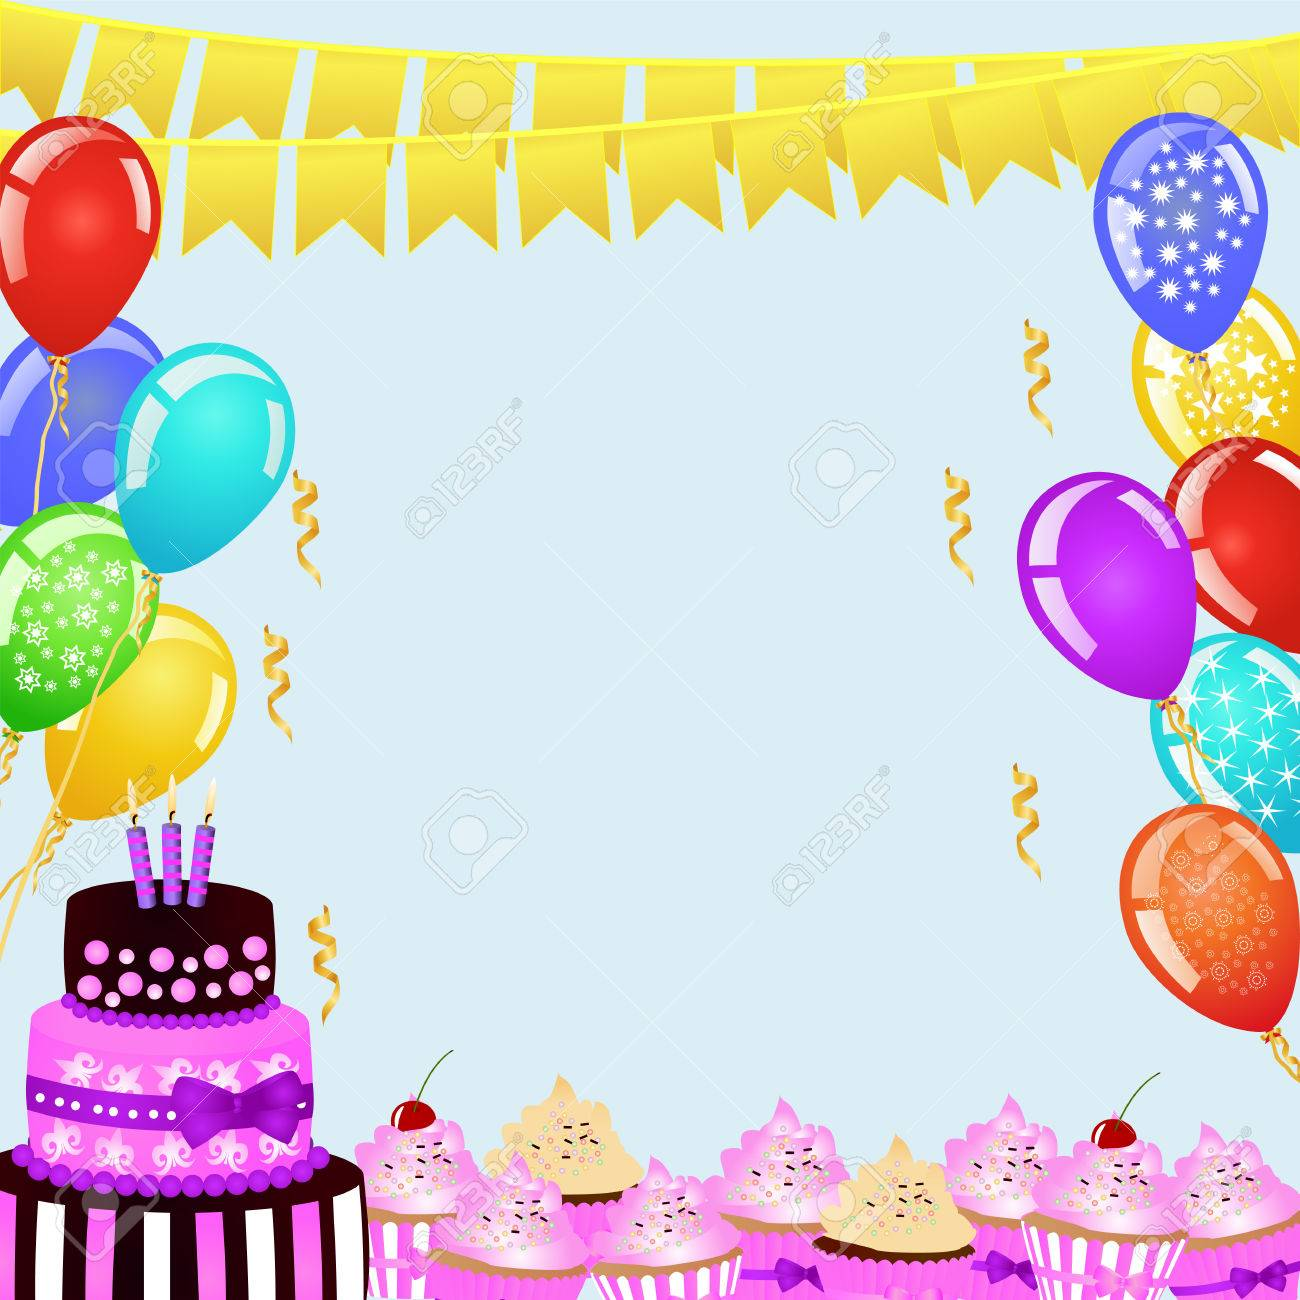 Birthday Party Background With Bunting Flags Balloons Birthday